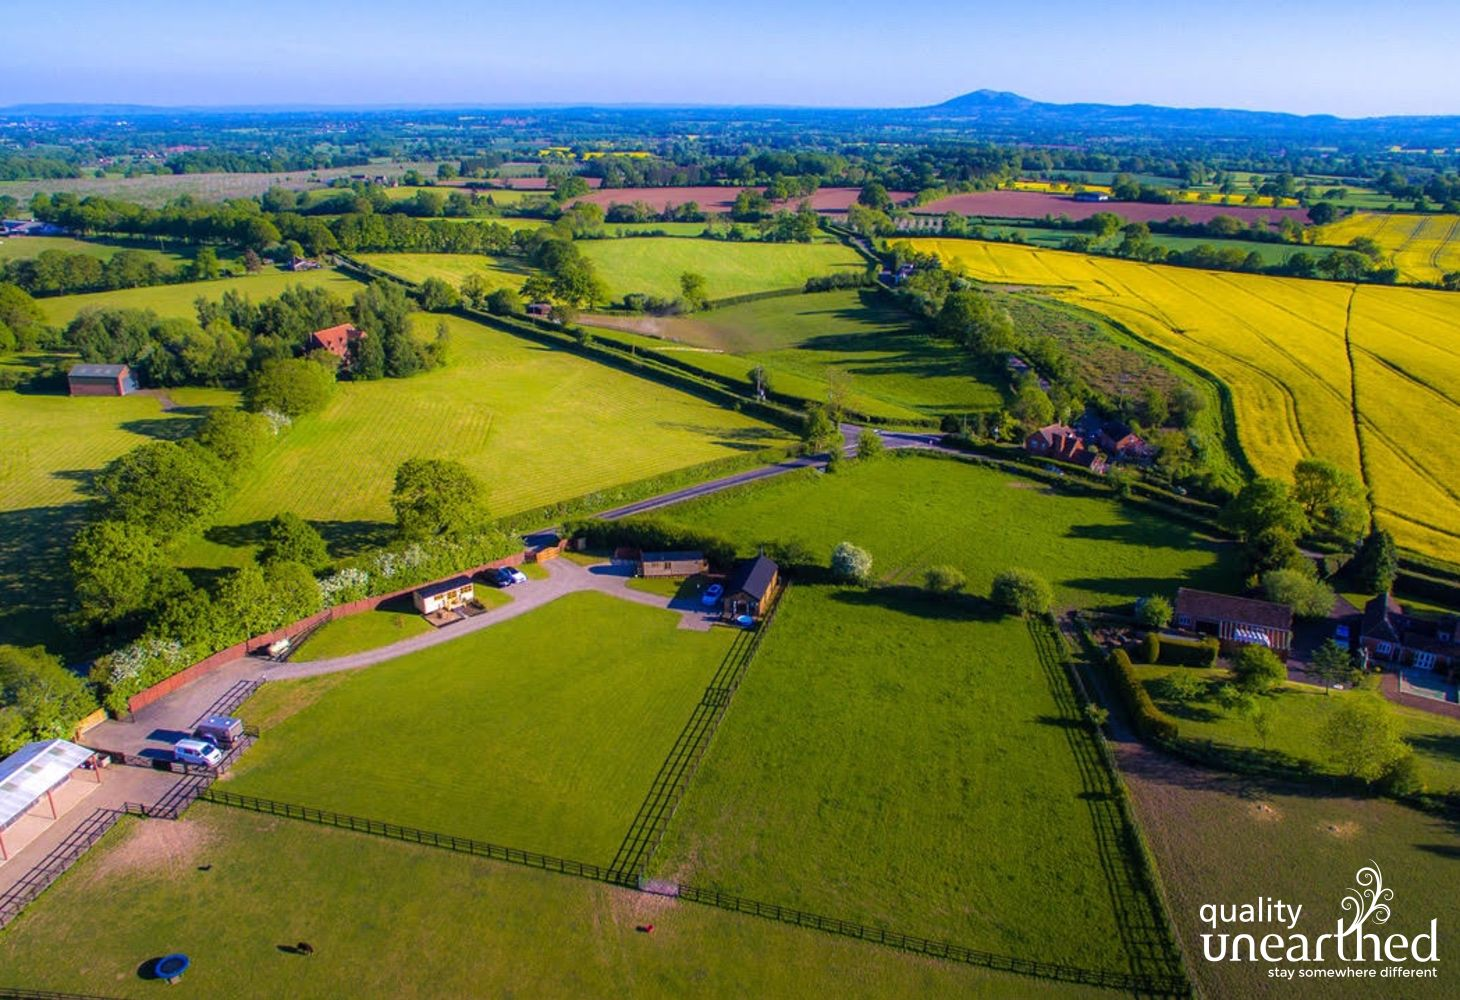 Hilltop View (Ockeridge Rural Retreats) in Worcestershire